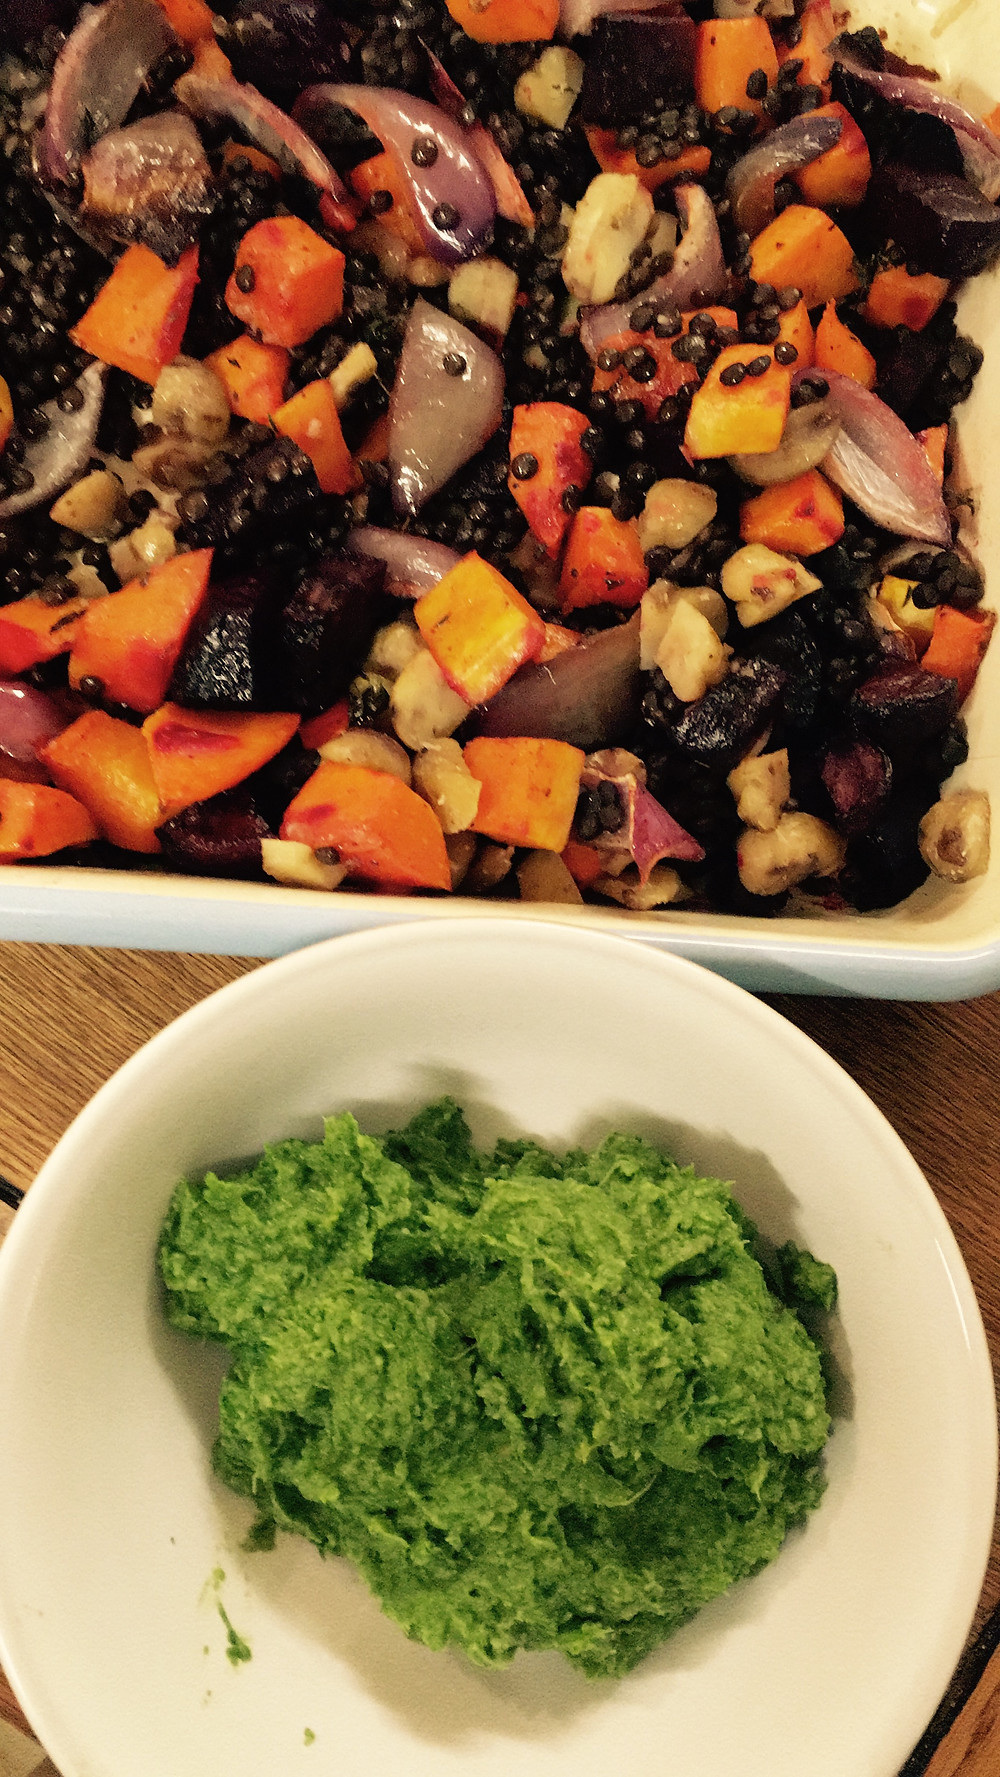 prepared veggies and pesto